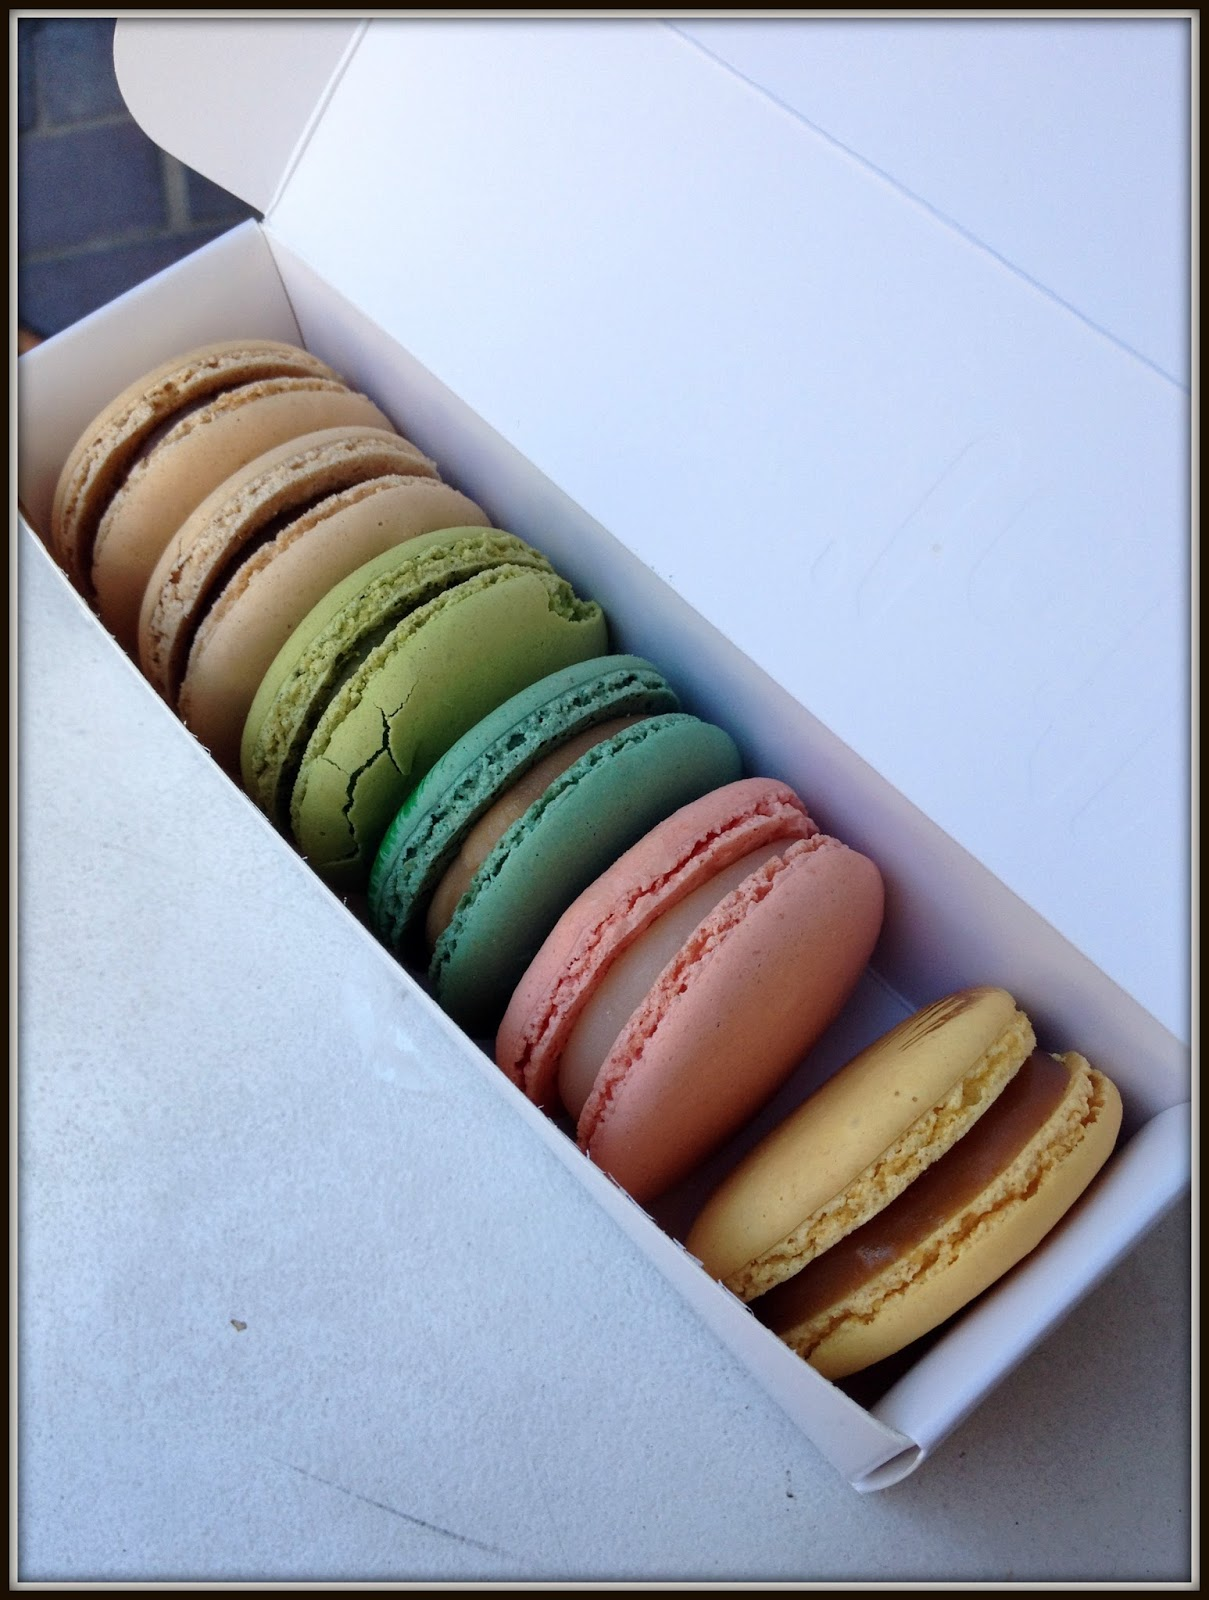 Lette Macarons --- From left to right: Hazelnut, columbian coffee, pistachio, earl grey, rose, passion fruit